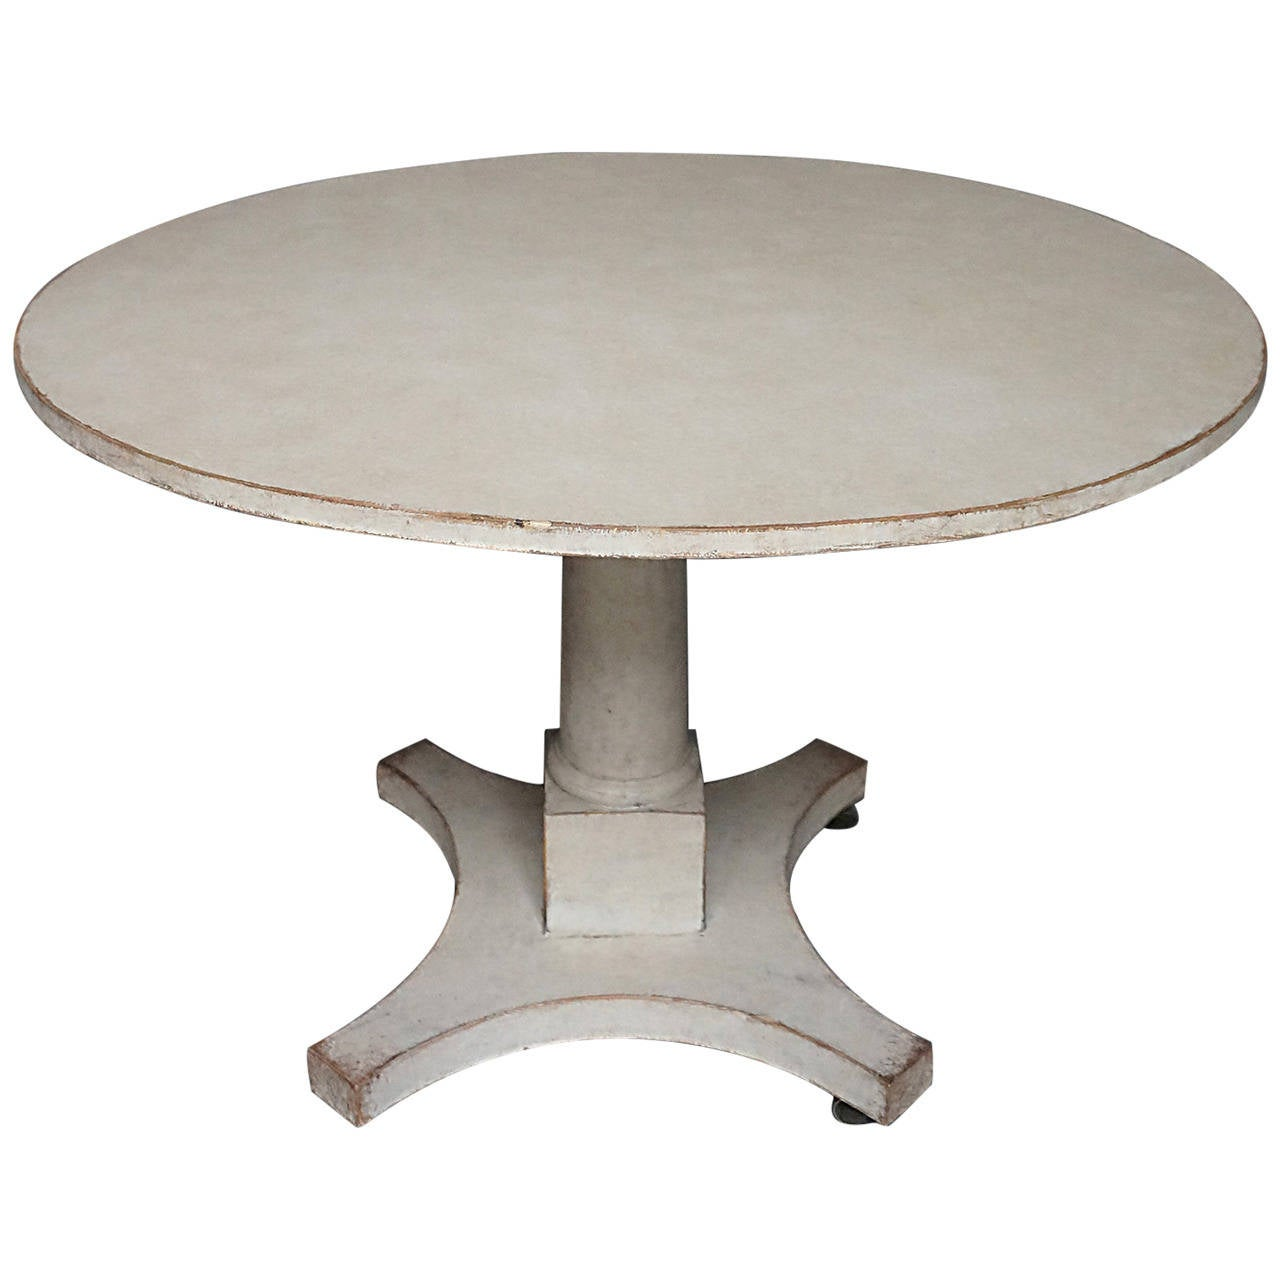 Pedestal dining table on saltire base at 1stdibs for Dining room table pedestal bases